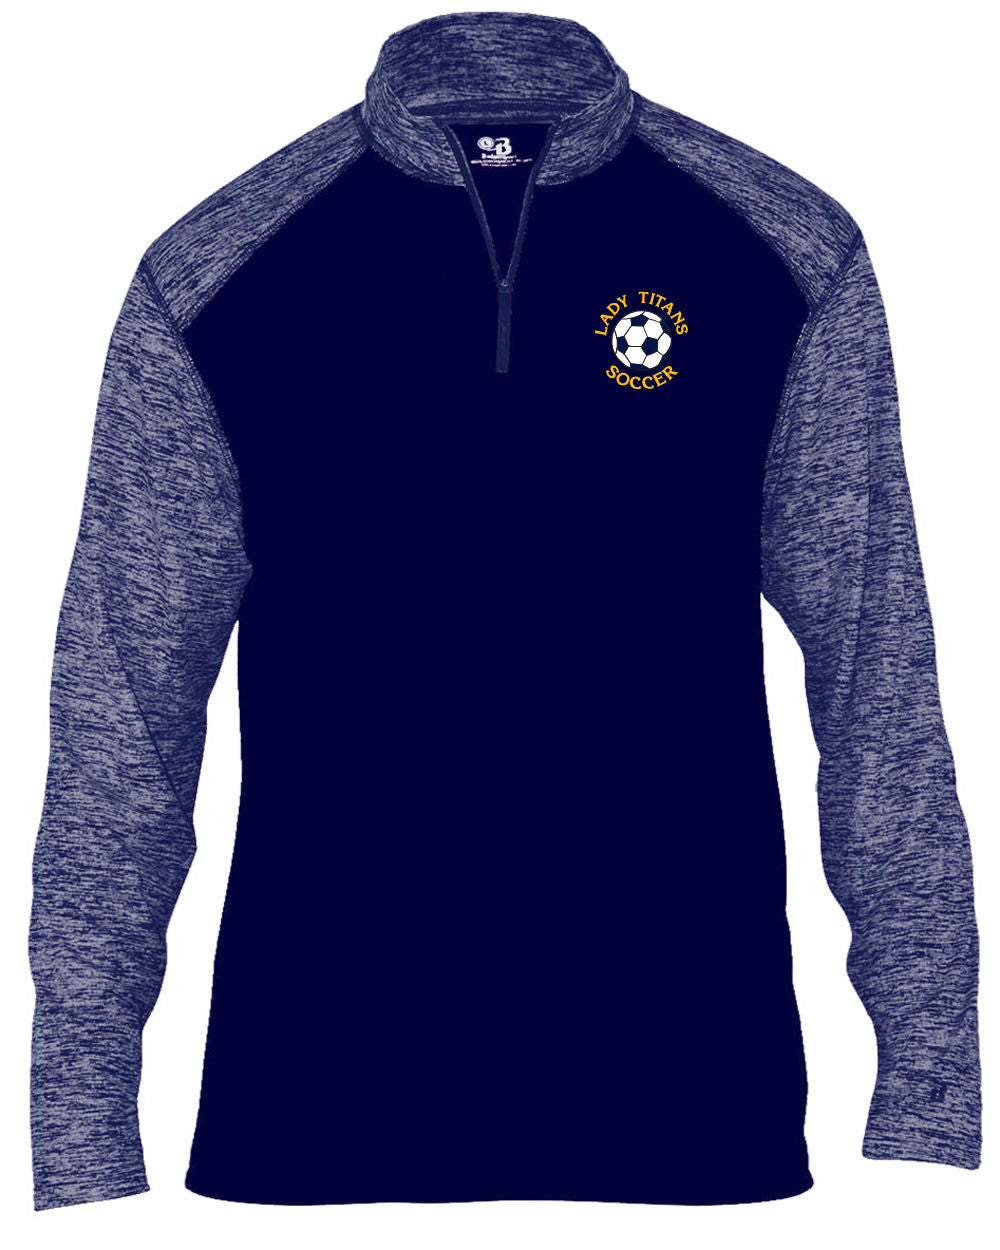 Adult Lady Titans Soccer Sport Blend 1/4 Zip - Navy